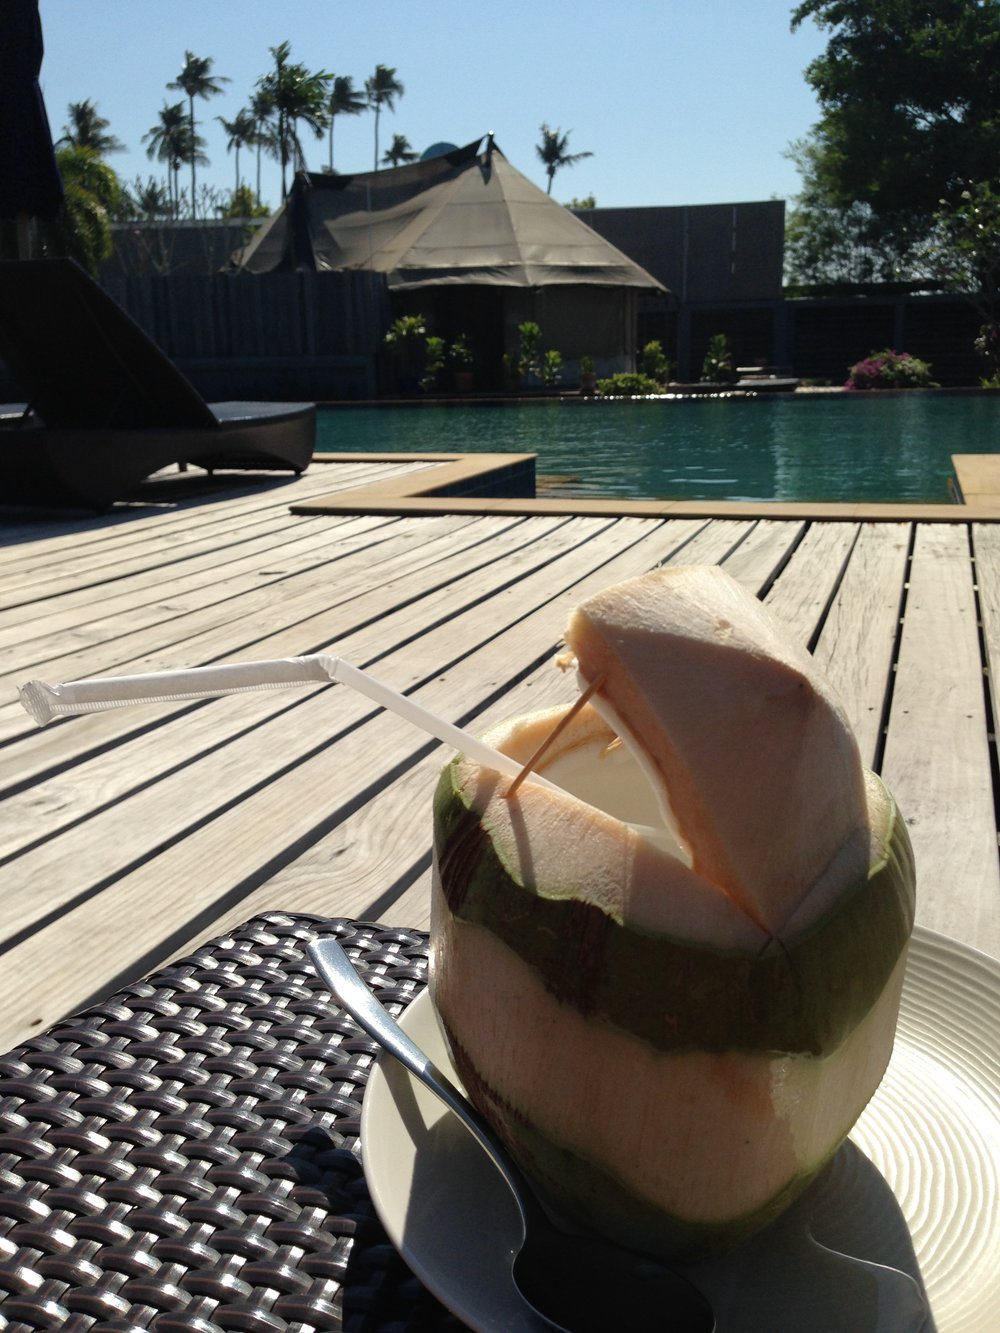 Poolside with a coconut